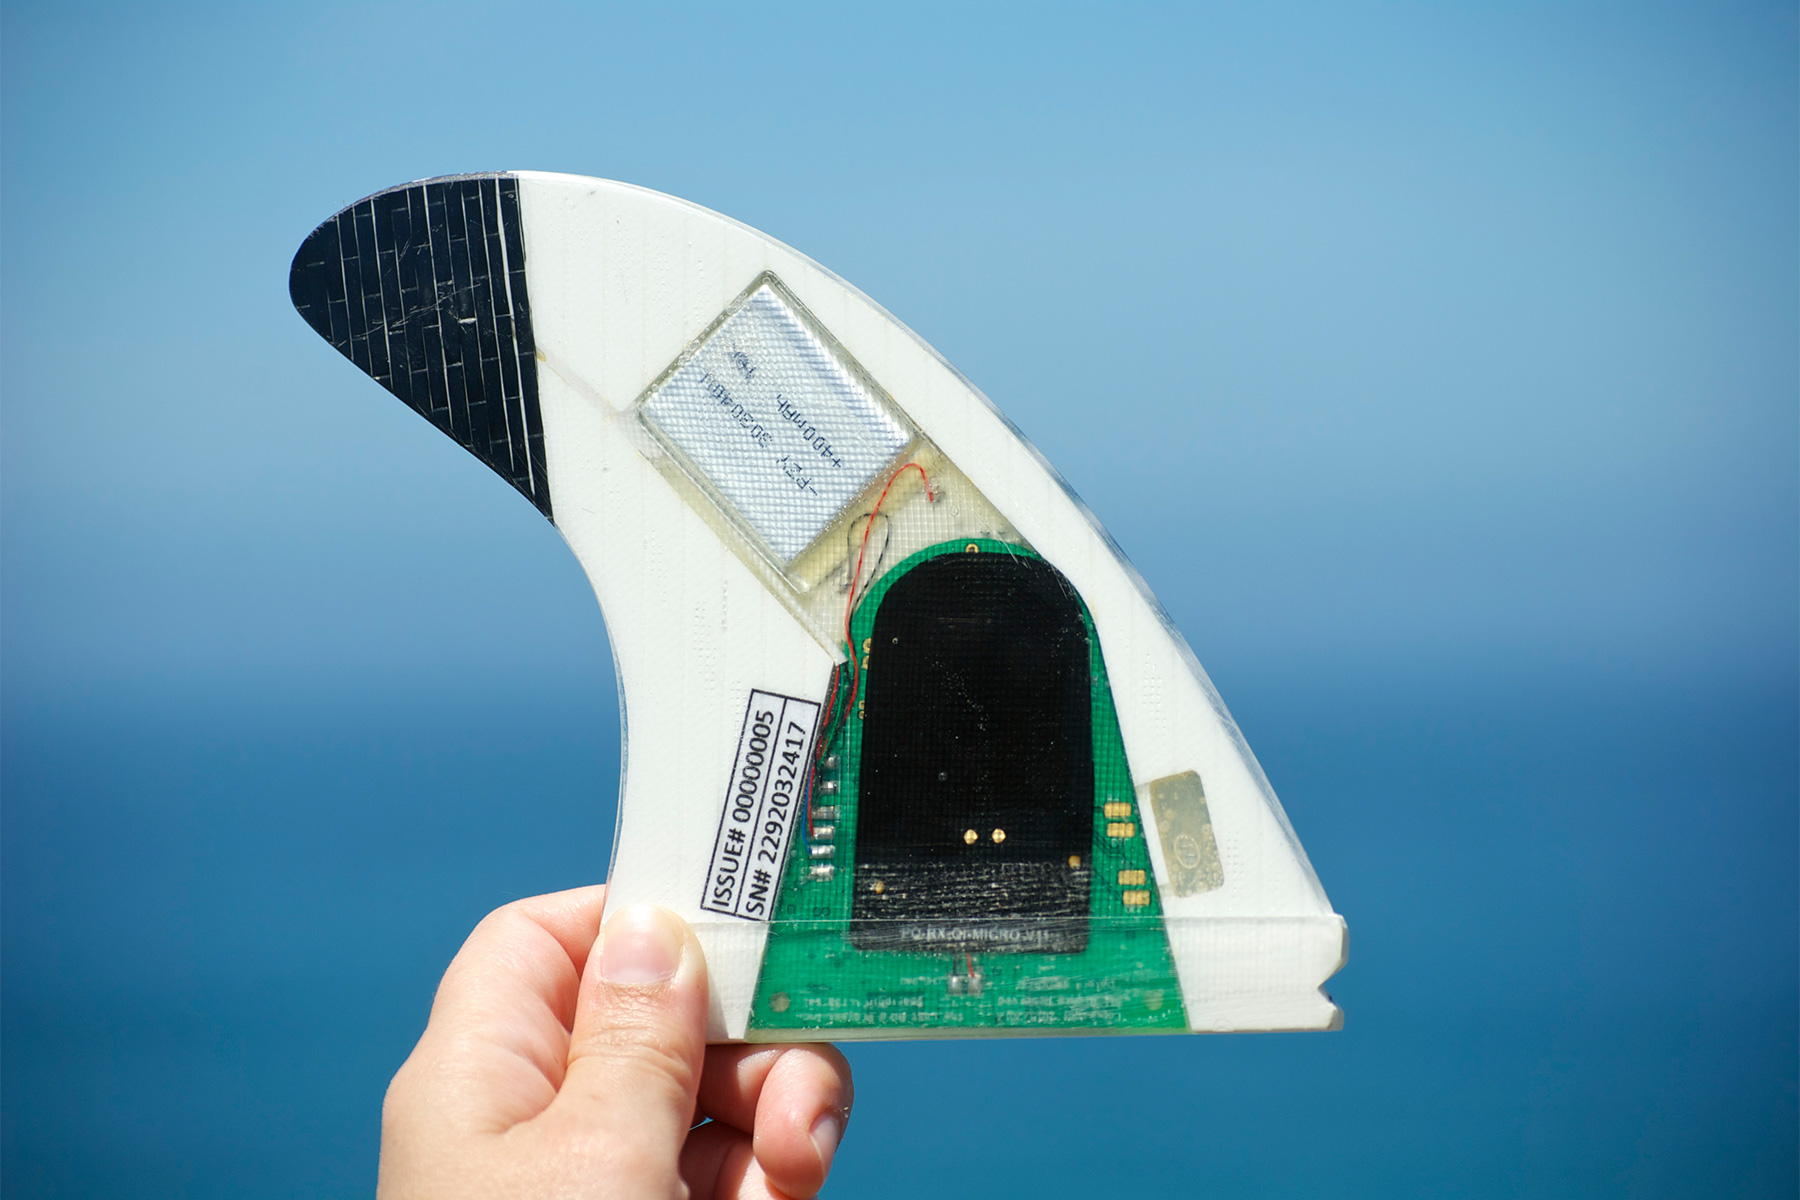 smartfin showing the circuitboard and sensors that allow it to collect oceanographic data